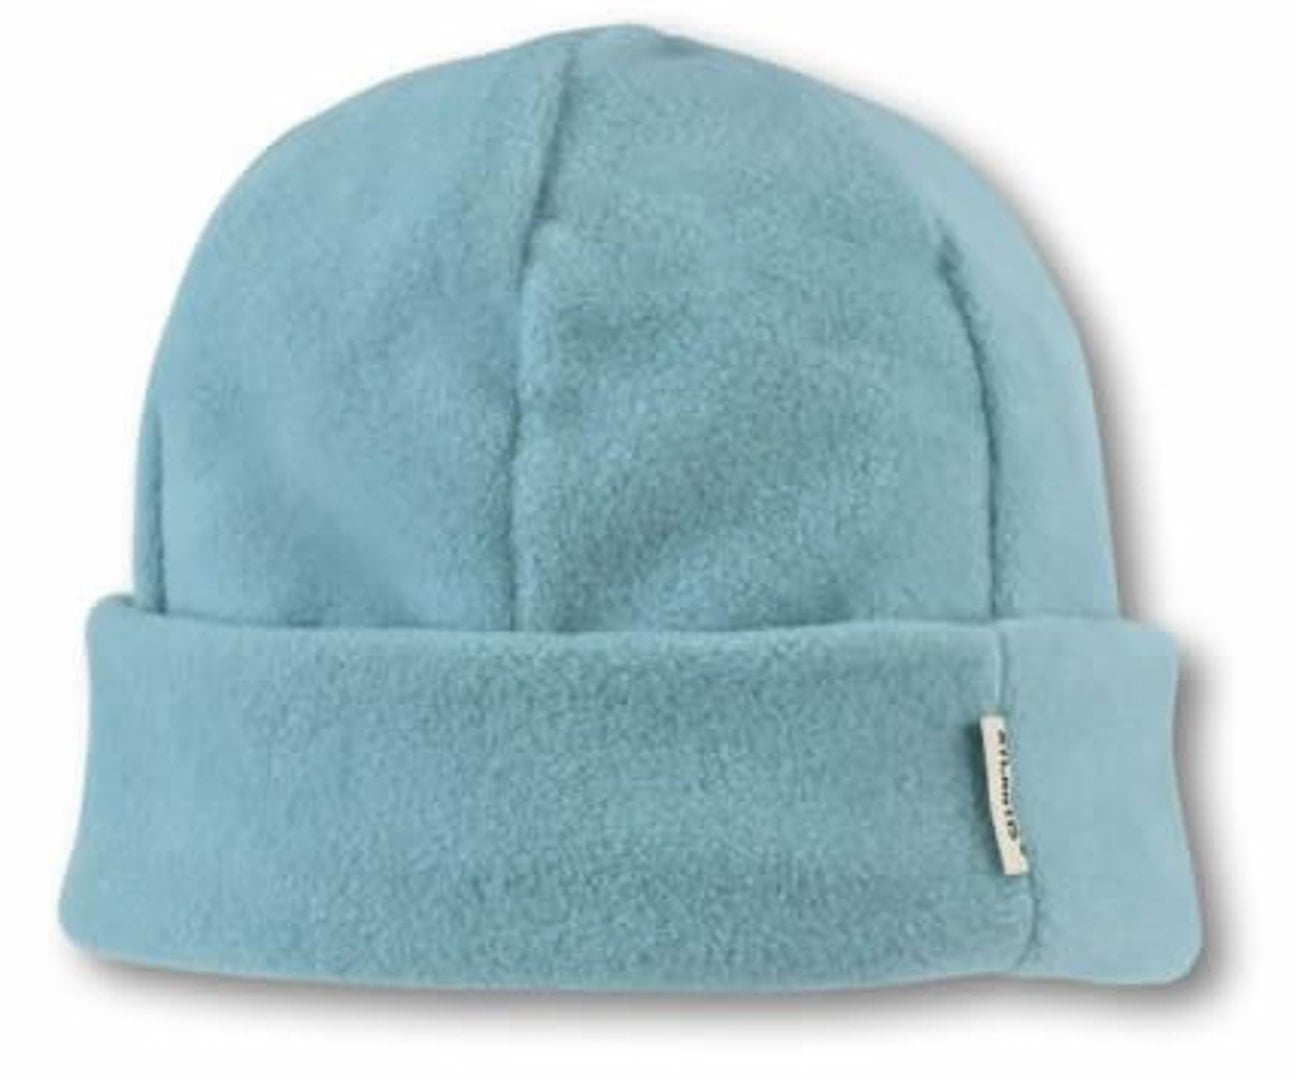 Shop the winter hat collection at DICK'S Sporting Goods for men's winter hats, women's winter hats and winter hats for boys and girls. Explore the latest styles from top winter-weather brands, like The North Face®, Burton®, Columbia® and many more.